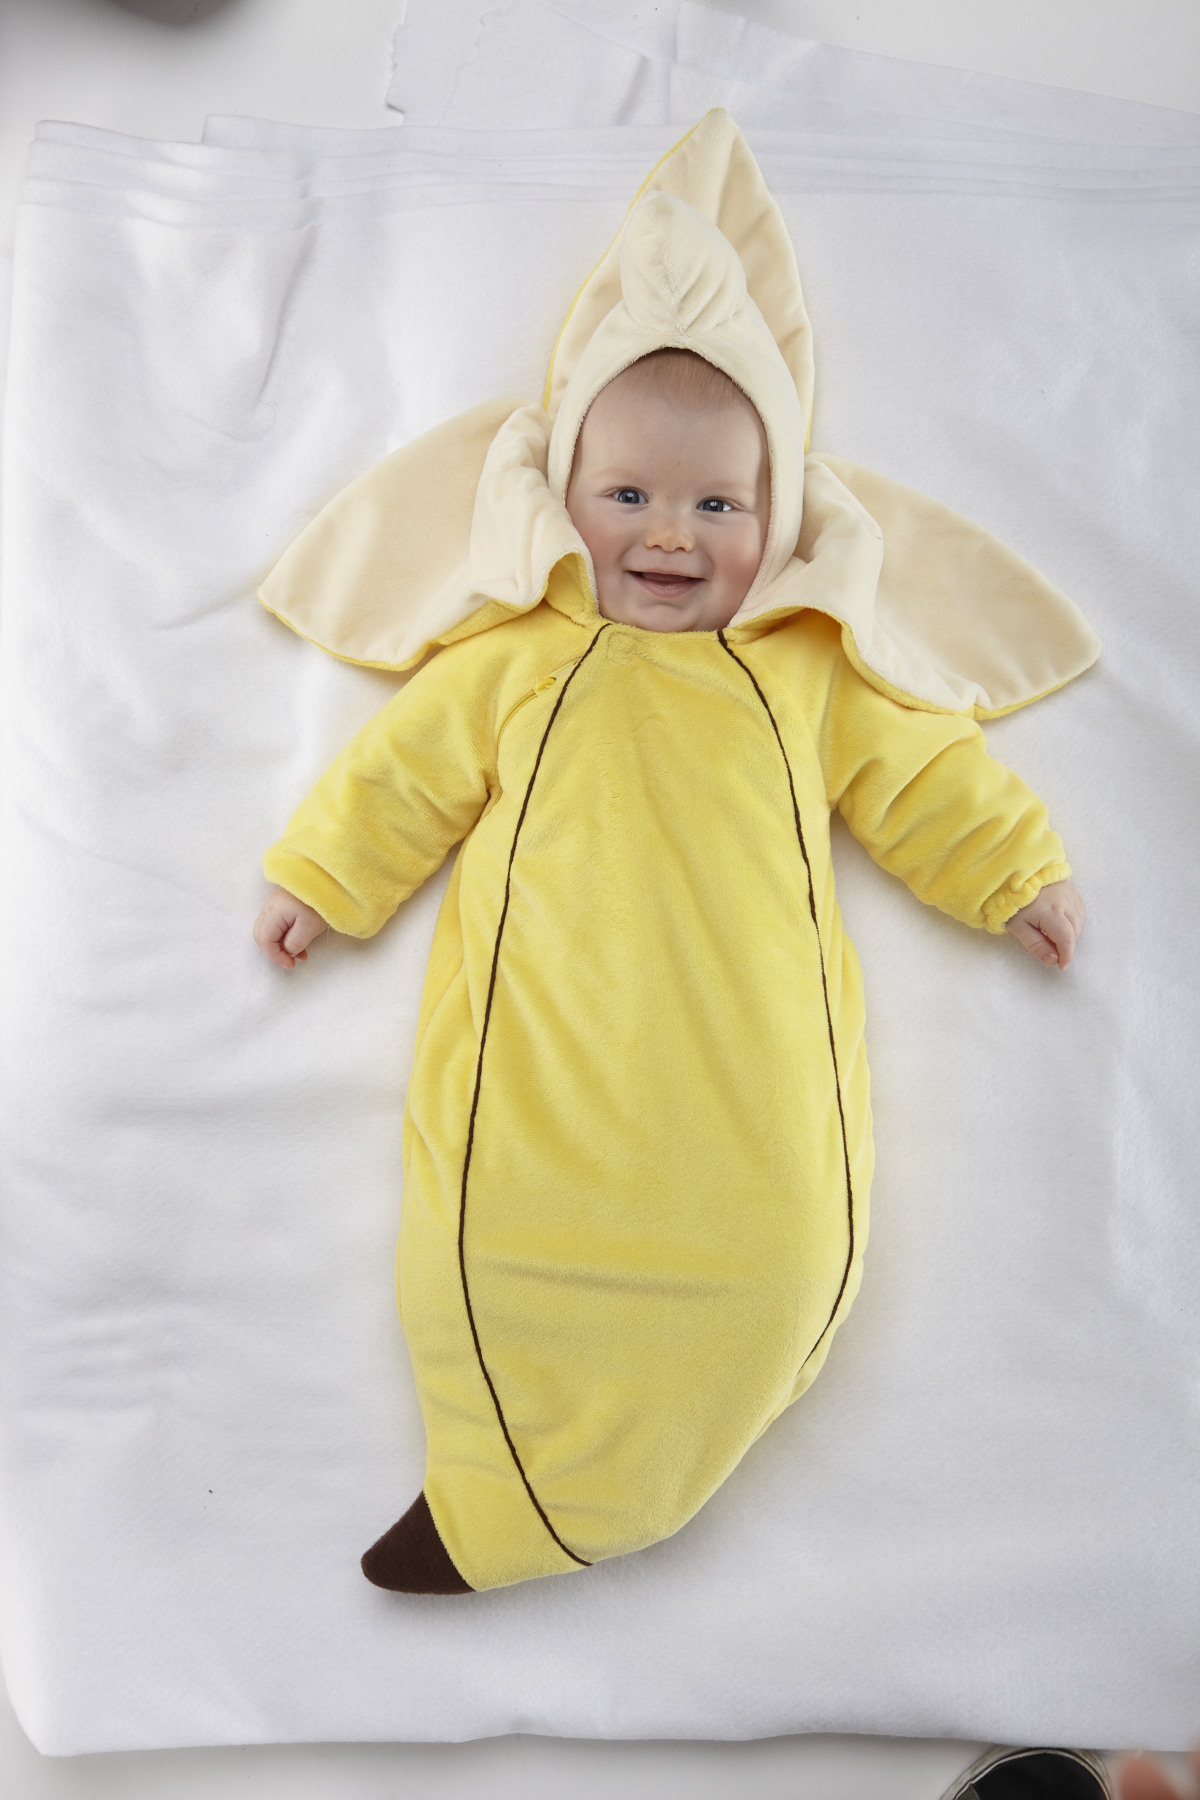 221217 Infant Banana Costume  sc 1 st  Target Corporate & Halloween Costumes (20 images)